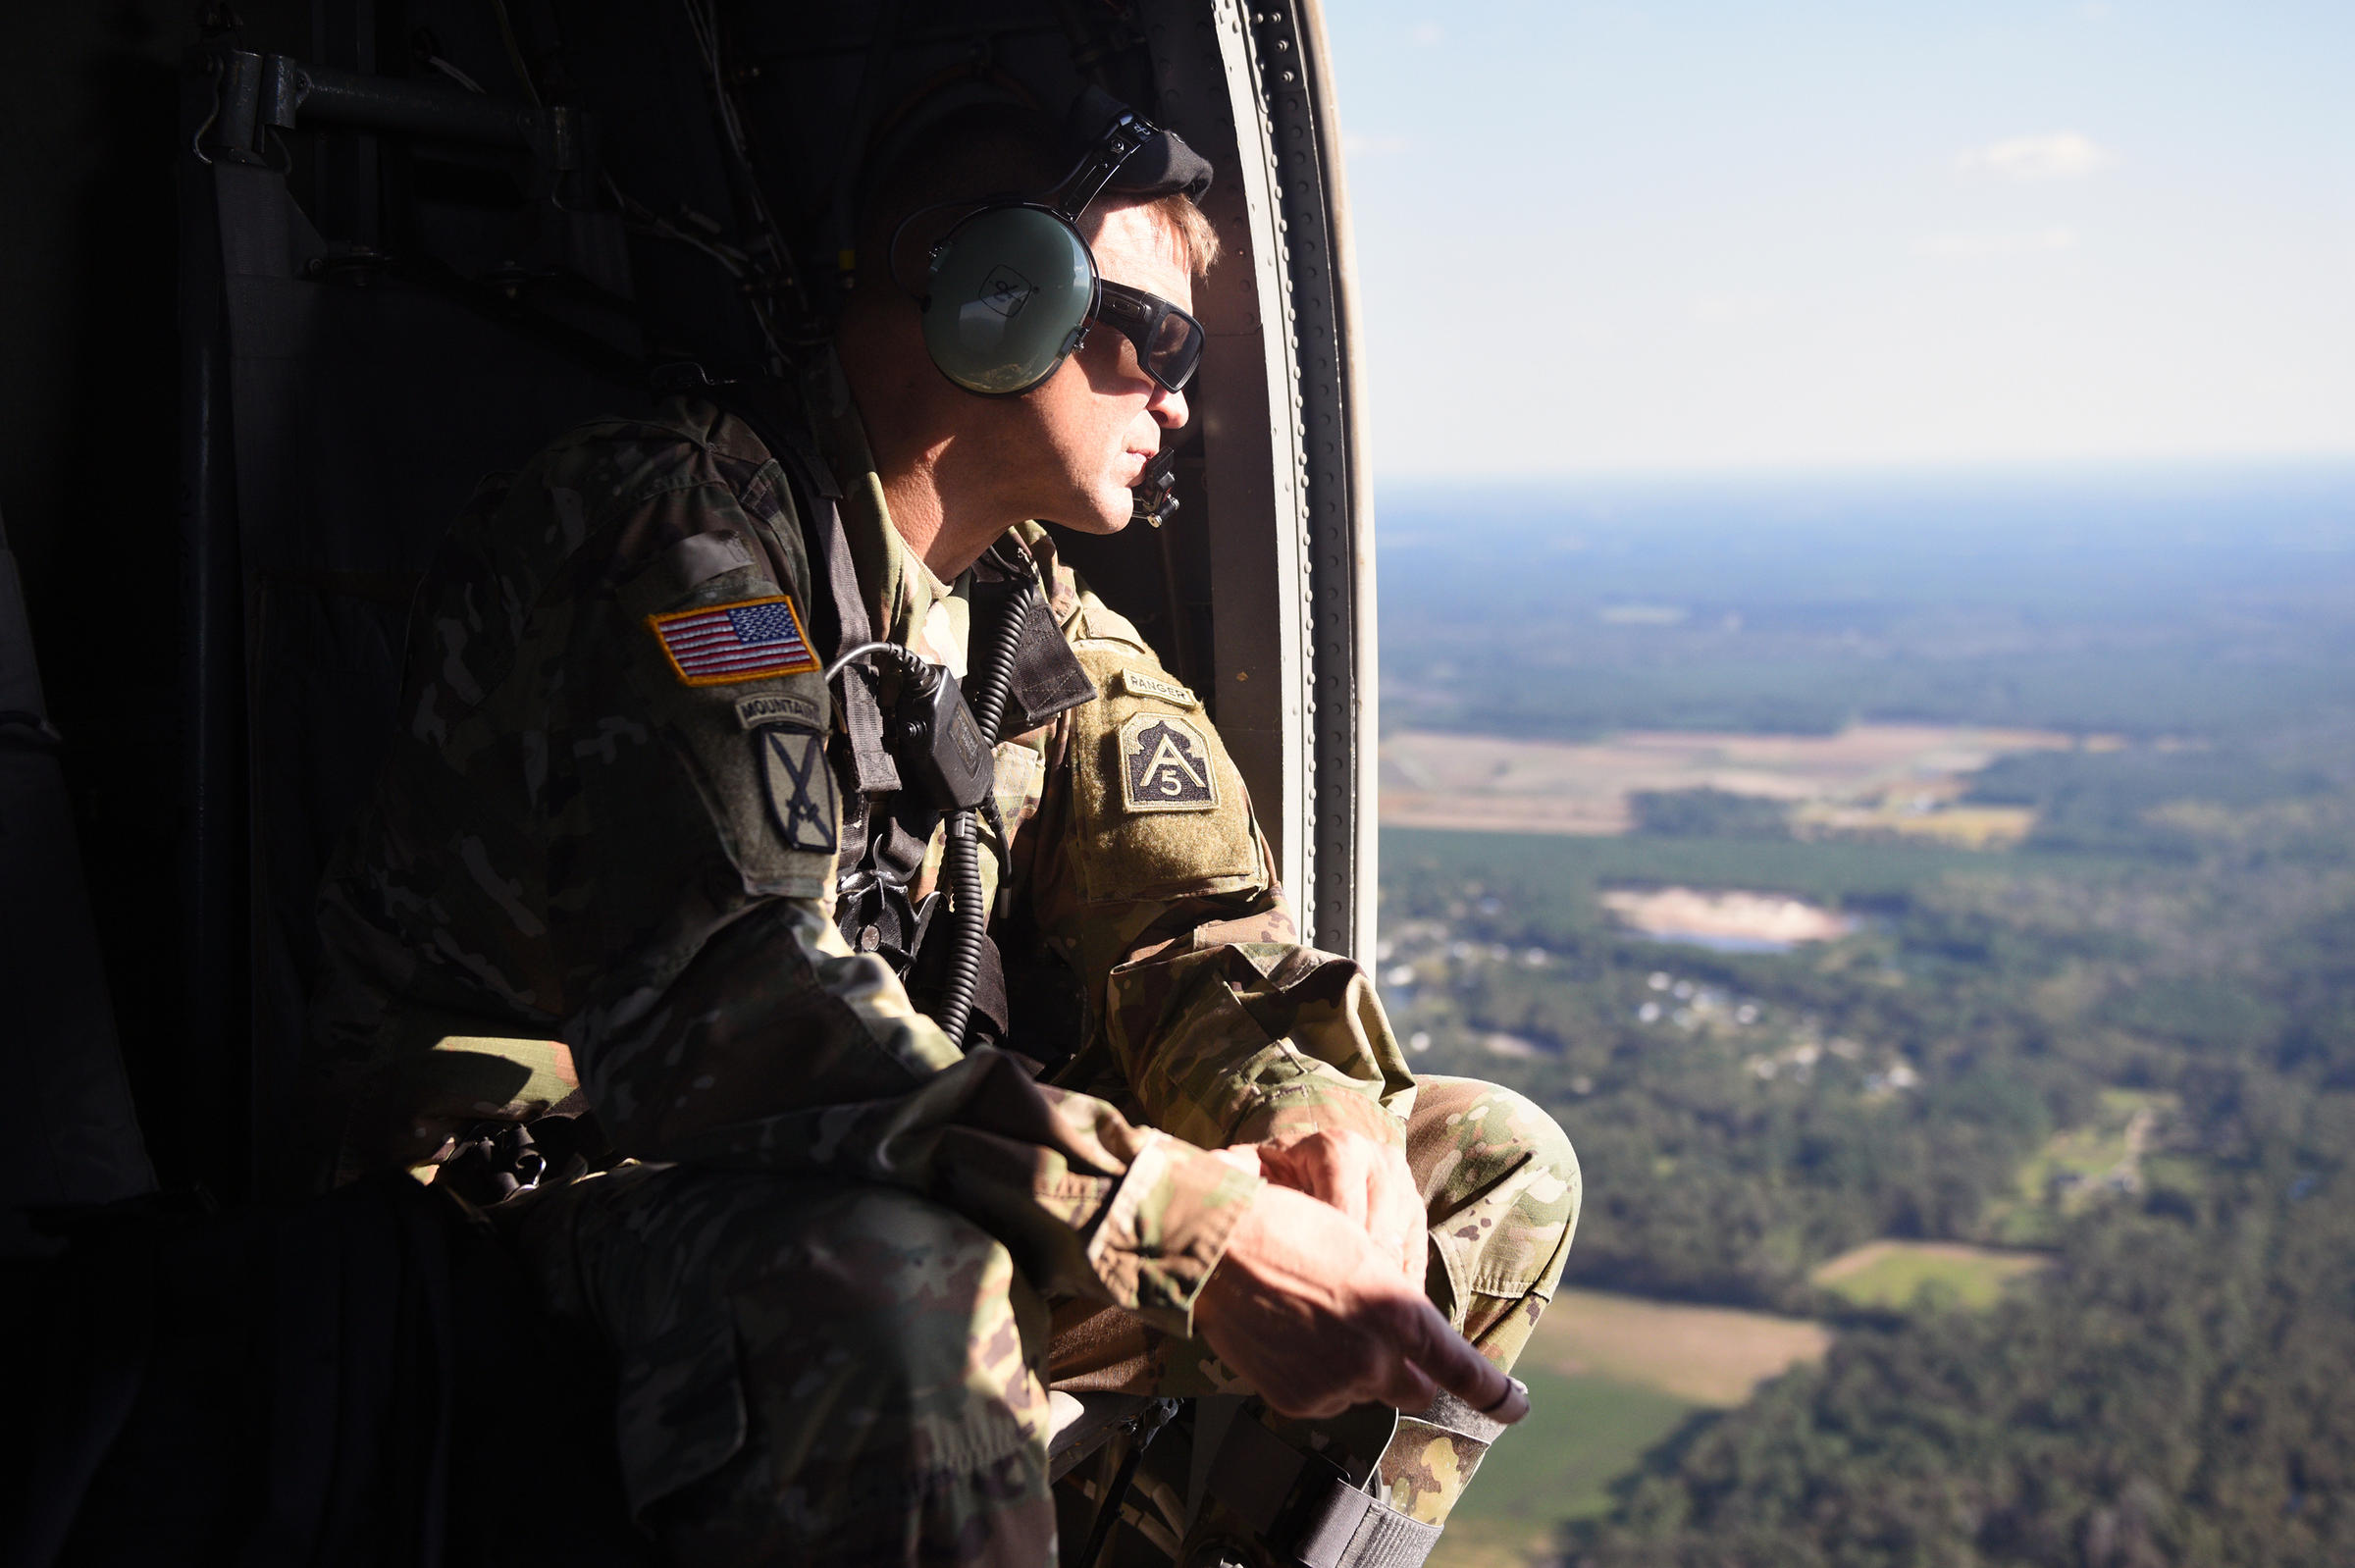 Lt. Gen. Jeffrey Buchanan surveys flooding and damage from Hurricane Florence during a helicopter ride from Raleigh to Wilmington N.C. on Wednesday. Buchanan also assisted after Hurricane Maria in Puerto Rico